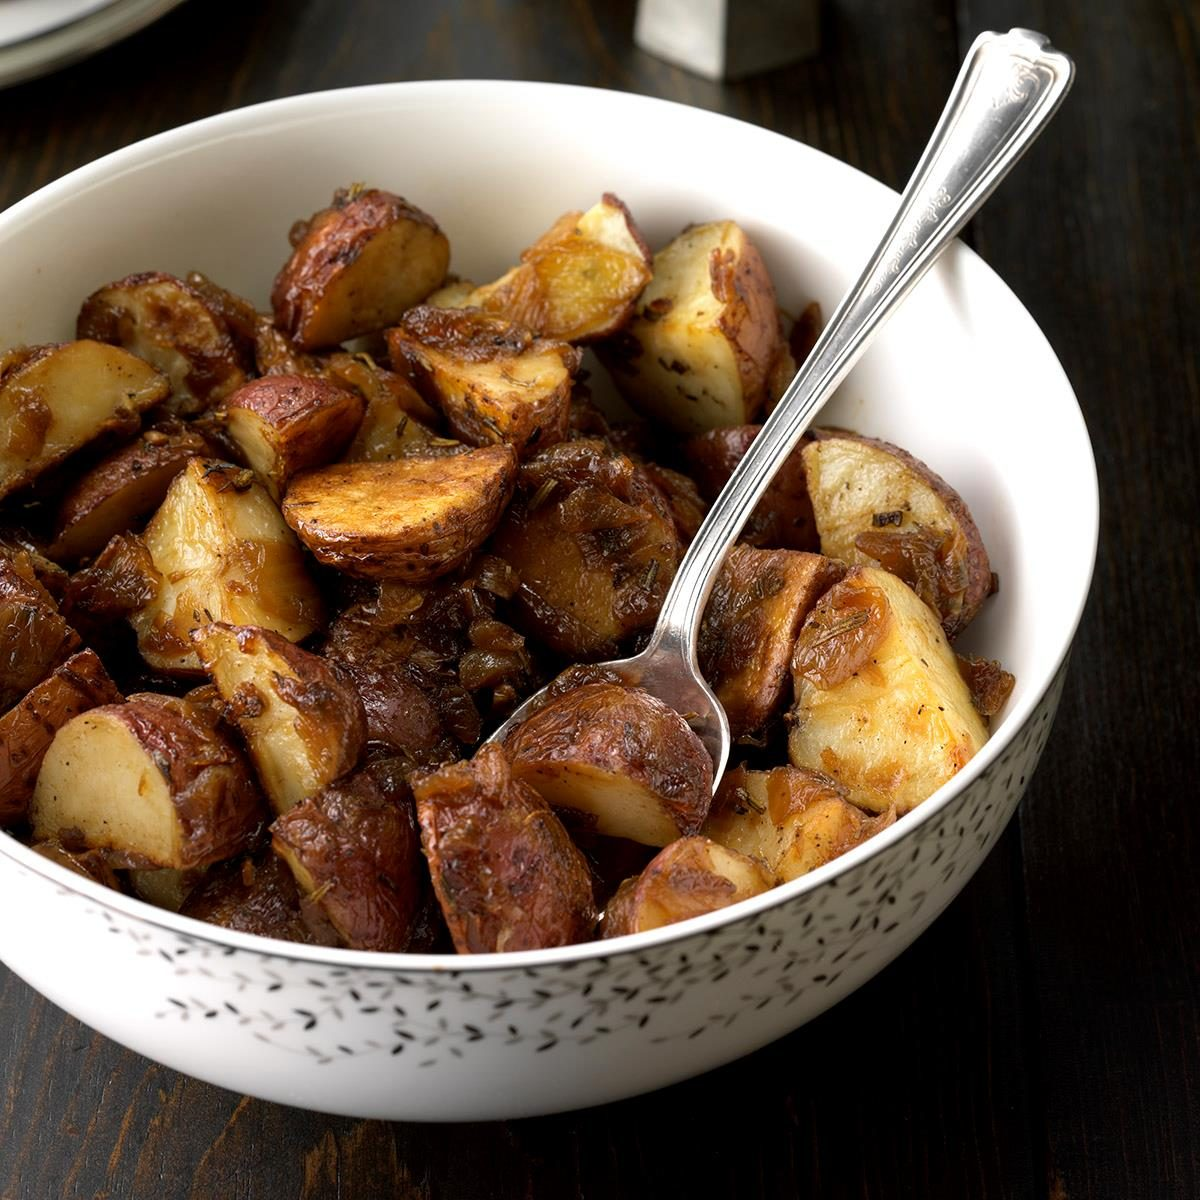 Vegan Rosemary Potatoes with Caramelized Onions